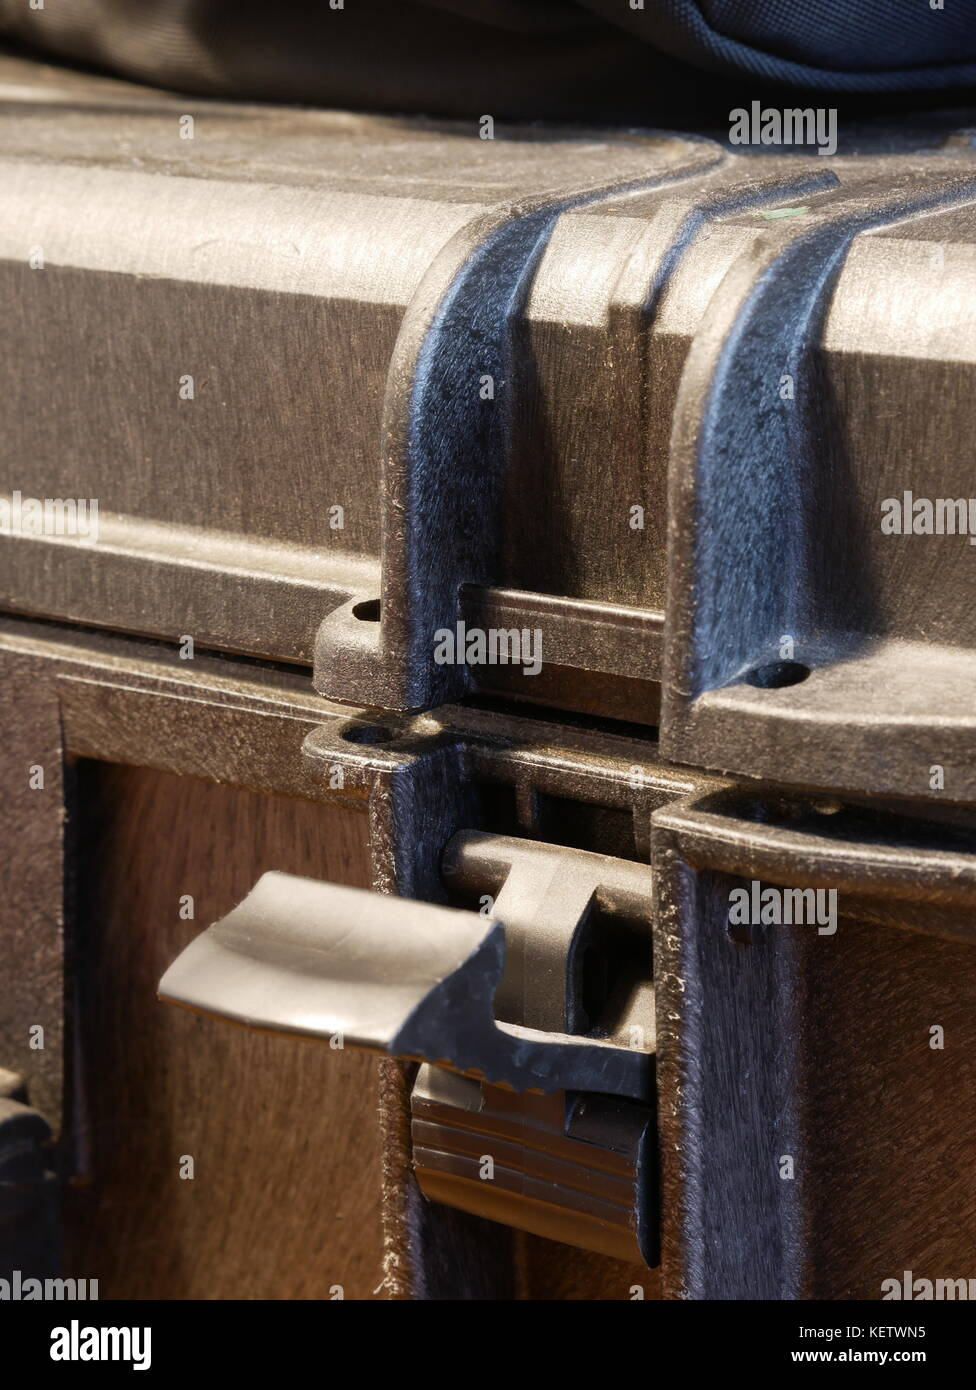 Secure equipment case, photography - Stock Image